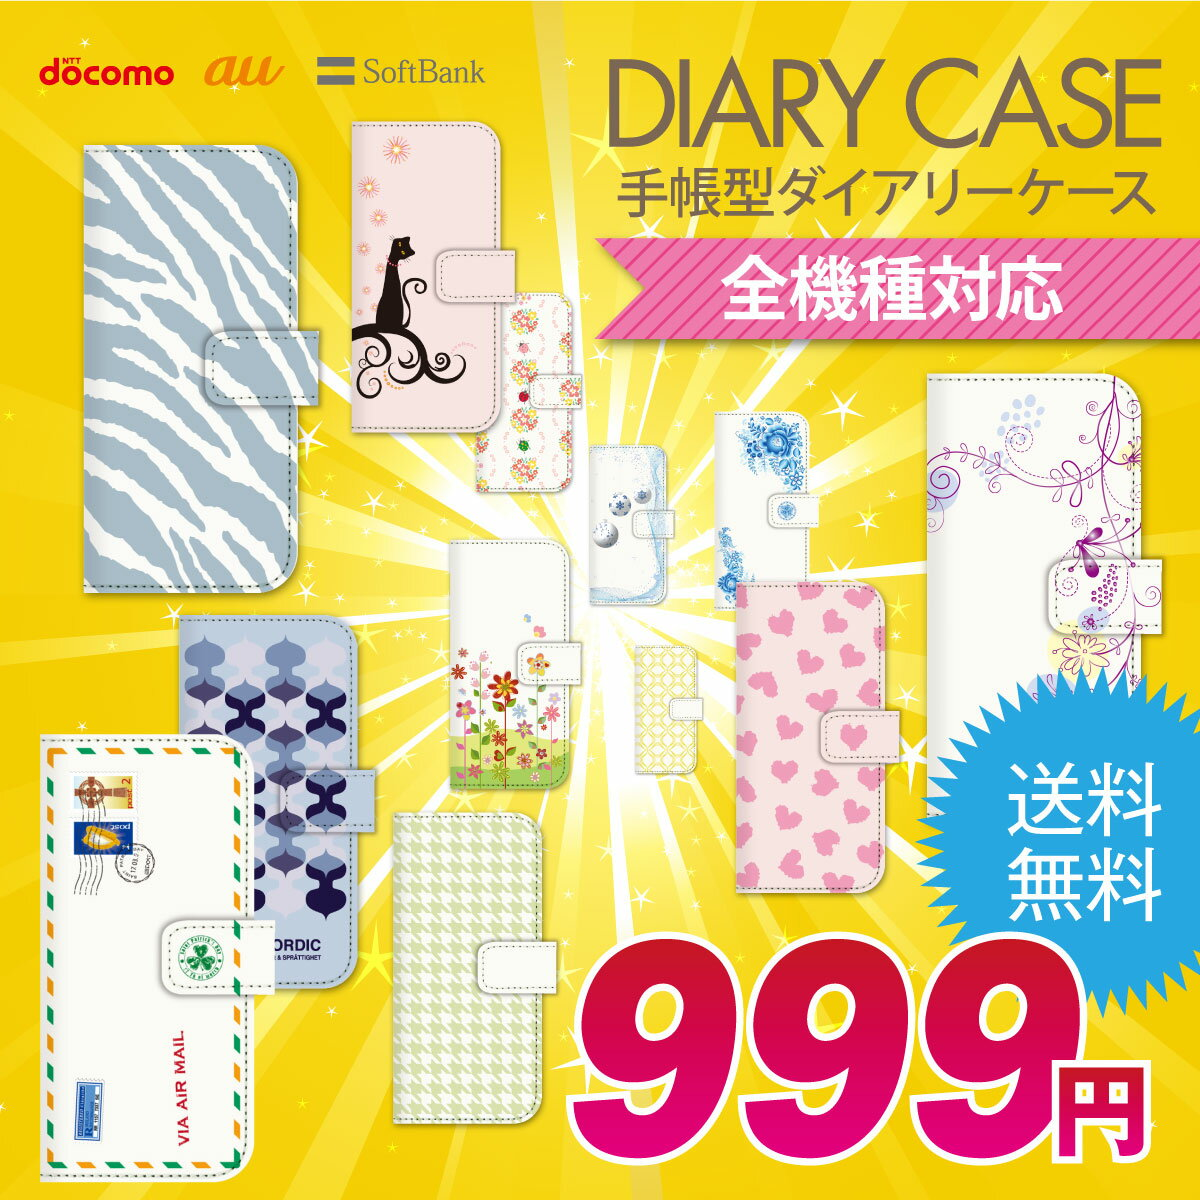 999円 スマホケース 手帳型 全機種対応 手帳 ケース カバー レザー iPhone7 iPhone6s iPhone6 Plus iPhone SE iPhone5s Xperia X Performance SO-04H Z5 Z4 Z3 A4 SO-02H SO-01H SOV33 aquos SH-04H SHV34 Xx3 arrows F-03H galaxy 99-zen-007